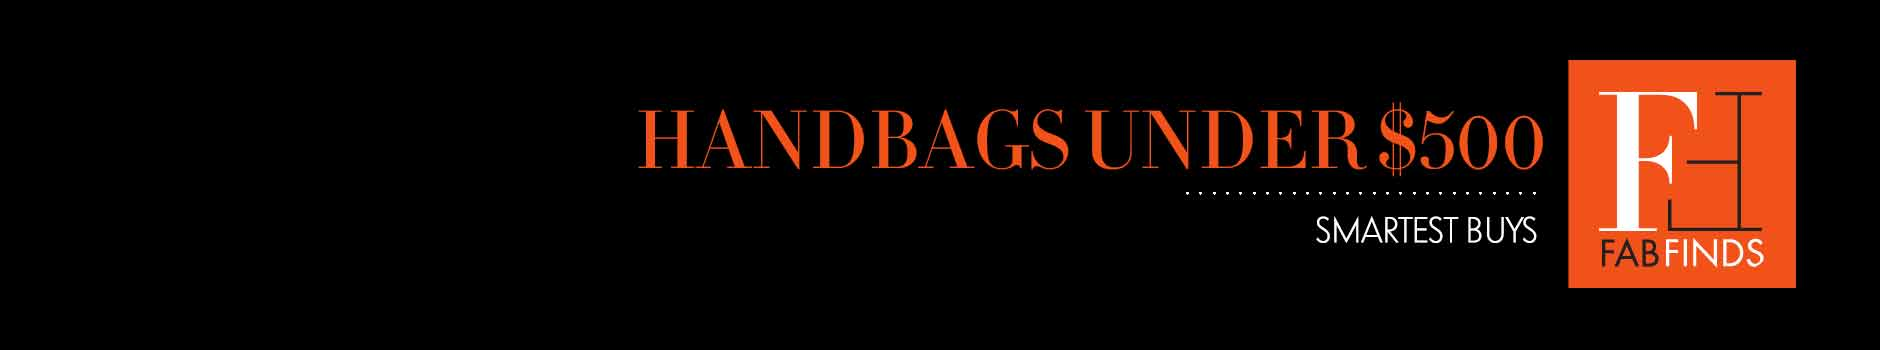 Fab Finds: Handbags Under $500